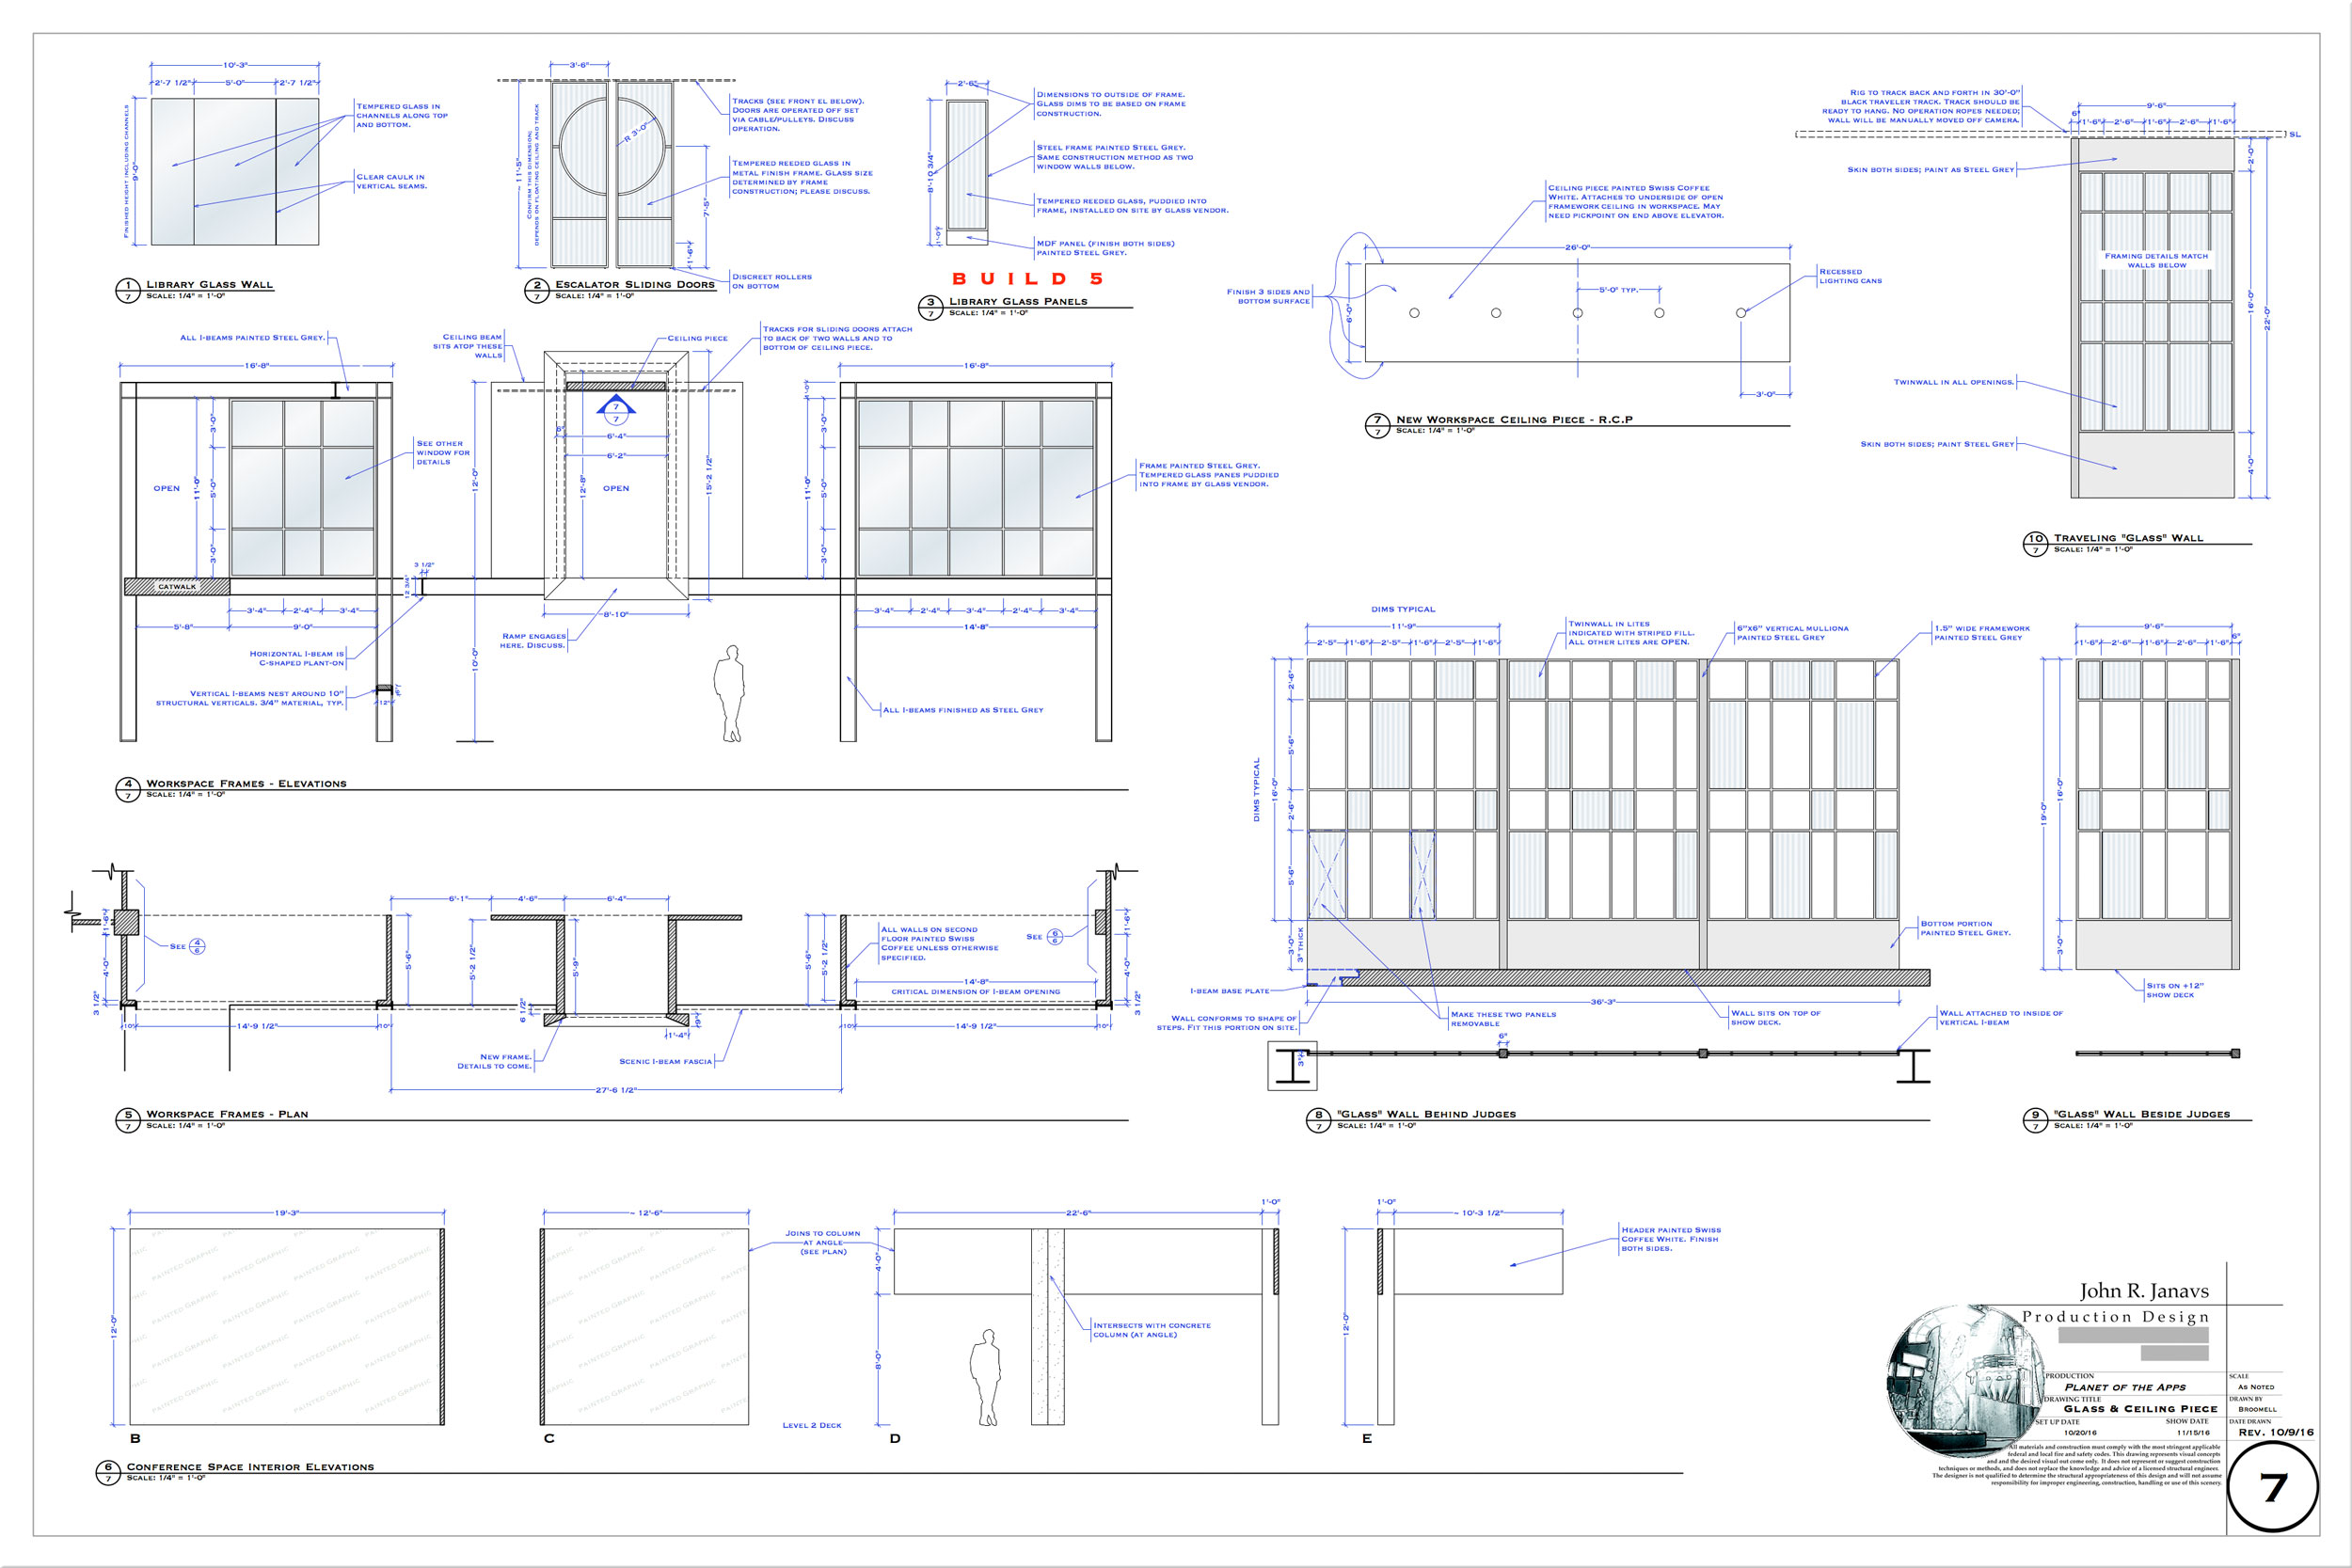 andy-broomell-set-design-drafting-pota2.jpg